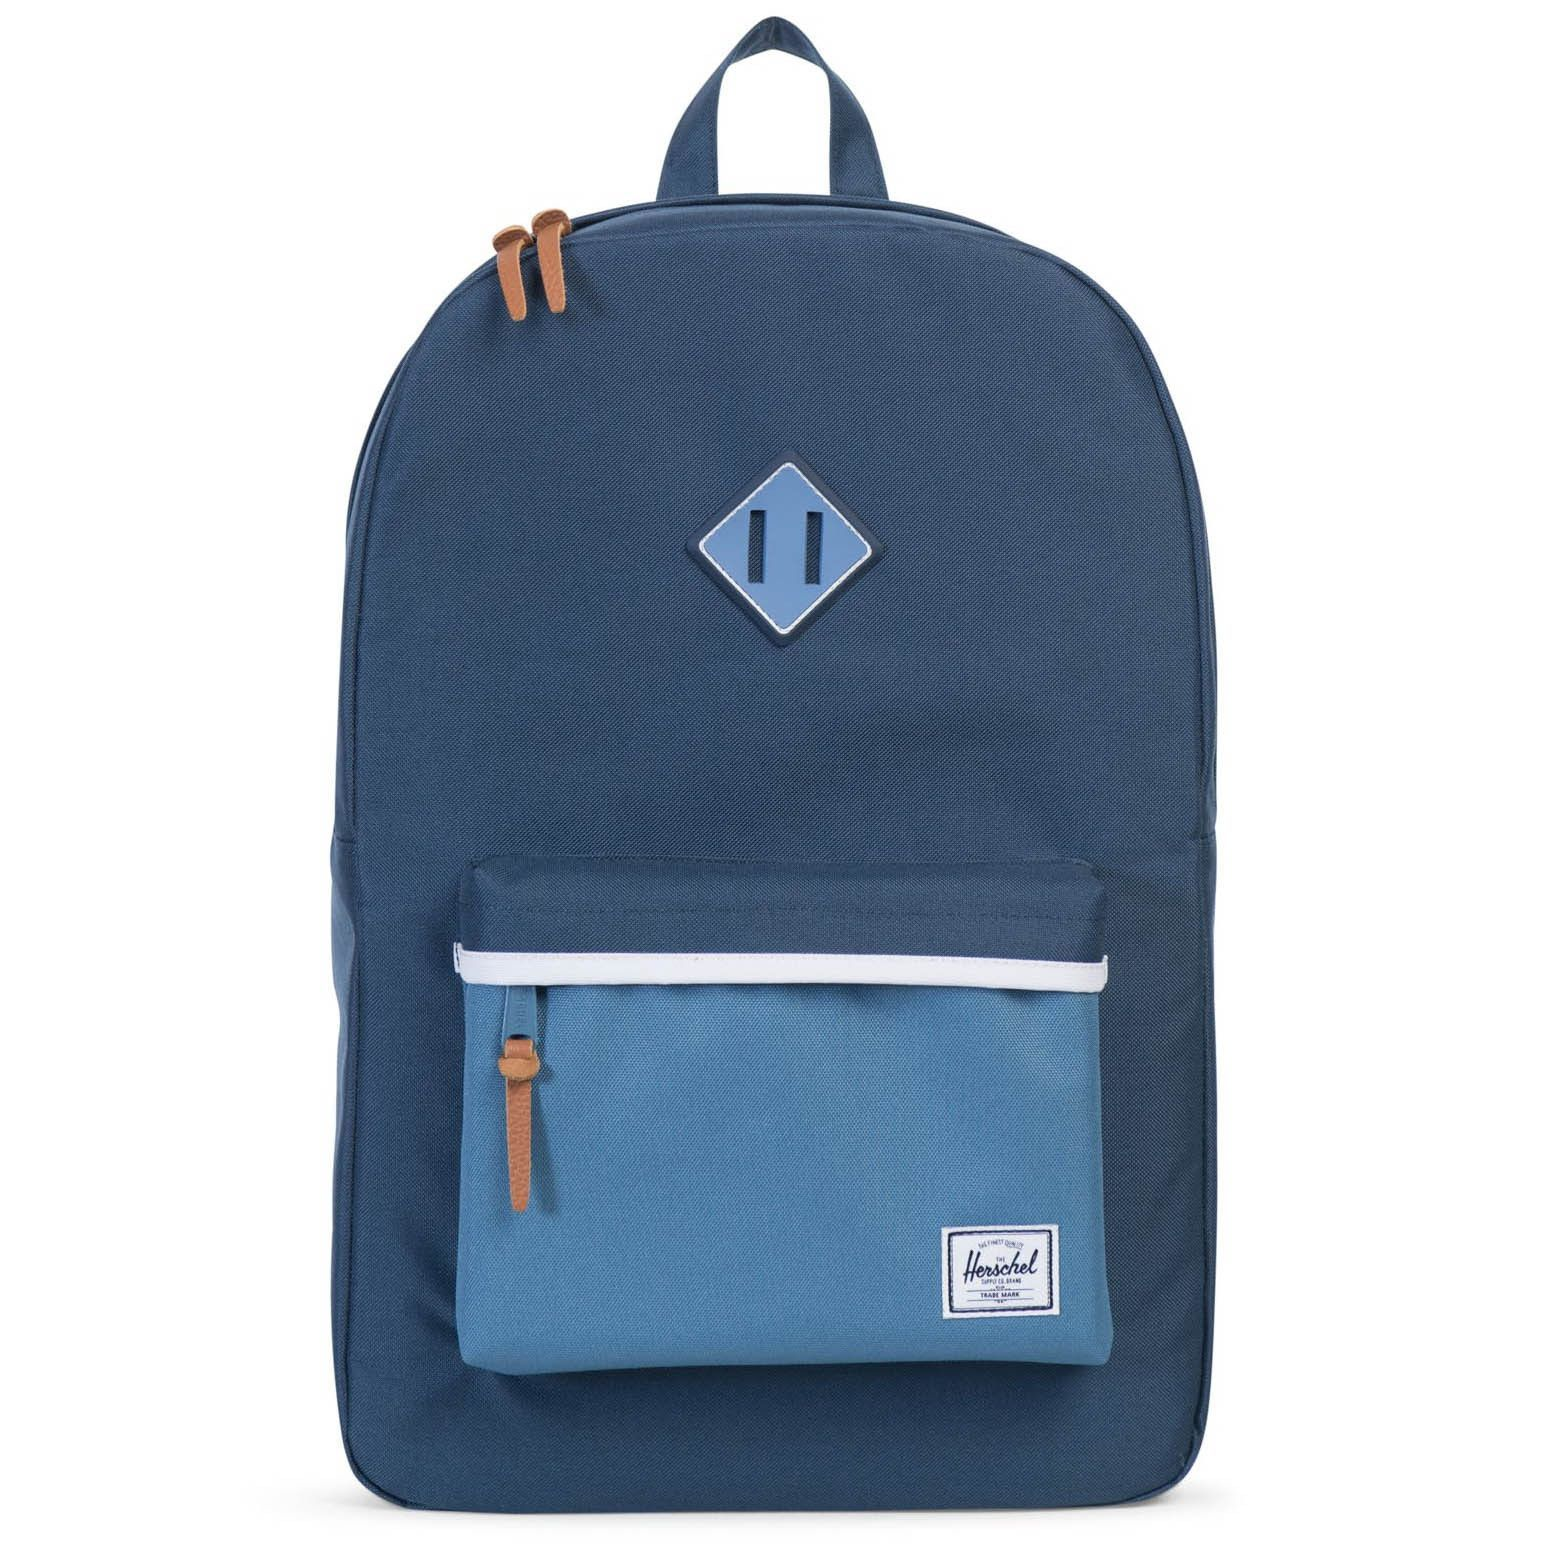 Herschel Supply Co. Heritage Backpack - Navy Captain s Blue White ... c951d04f1a07e